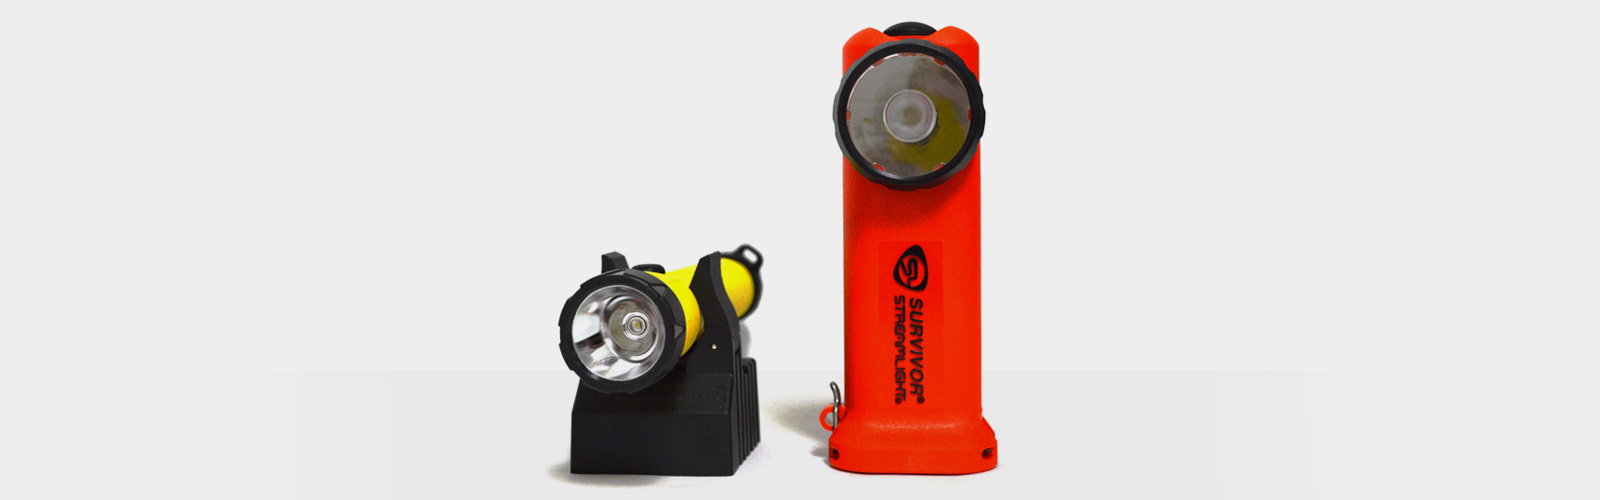 flashlights and accessories